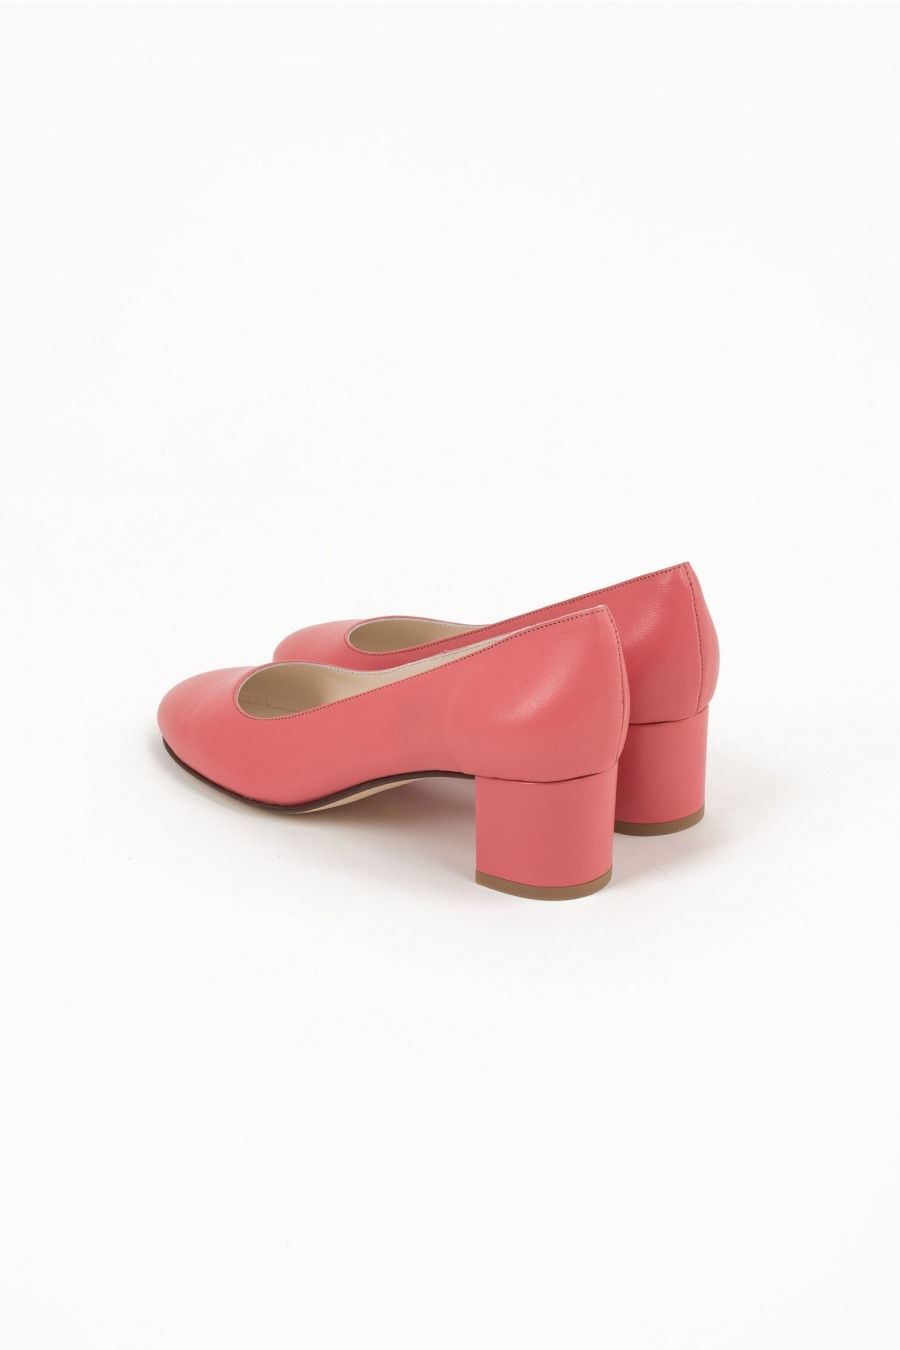 mid heel shoes rounded point